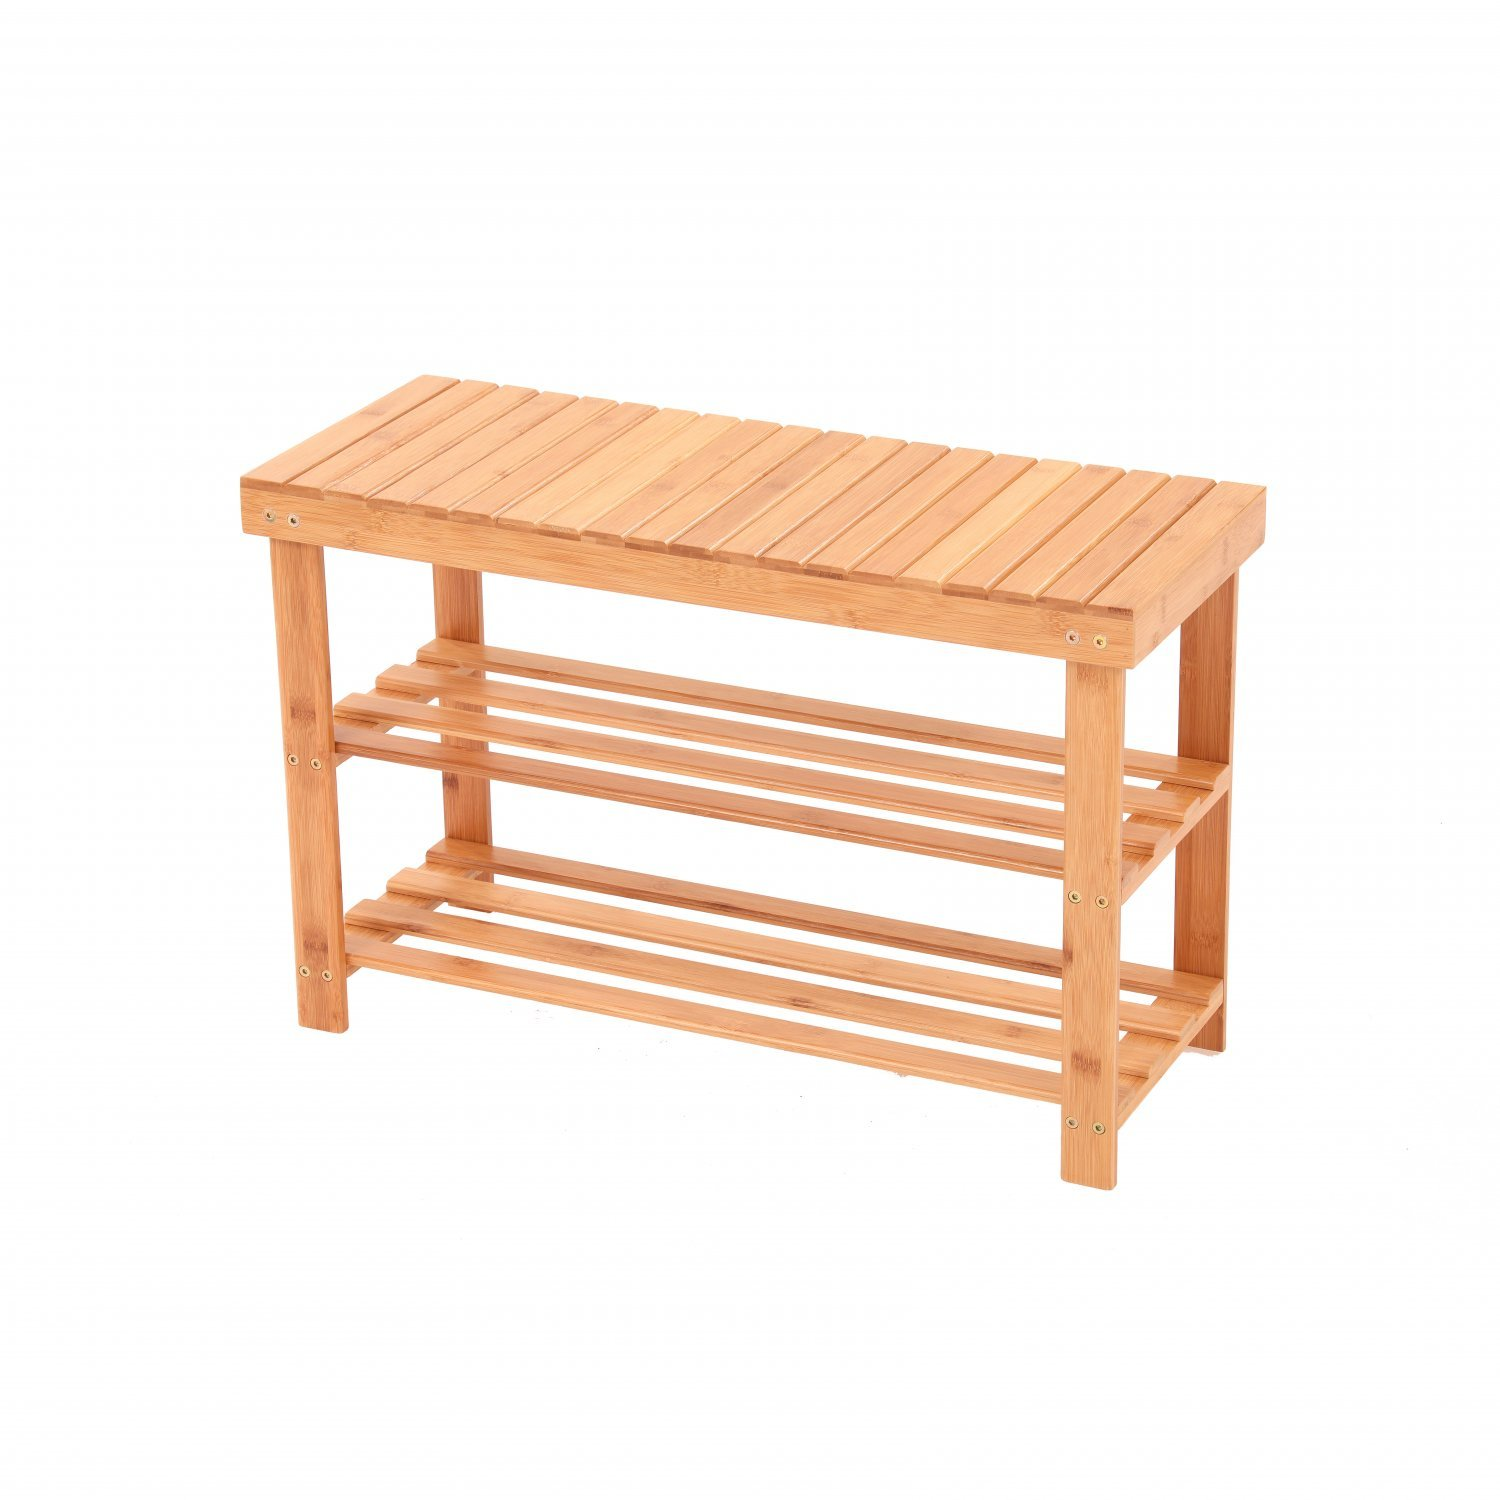 3 Tier Wooden Bamboo Shoe Rack Bench Storage Organiser Holder 21 99 Oypla Stocking The Very Best In Toys Electrical Furniture Homeware Garden Gifts And Much More